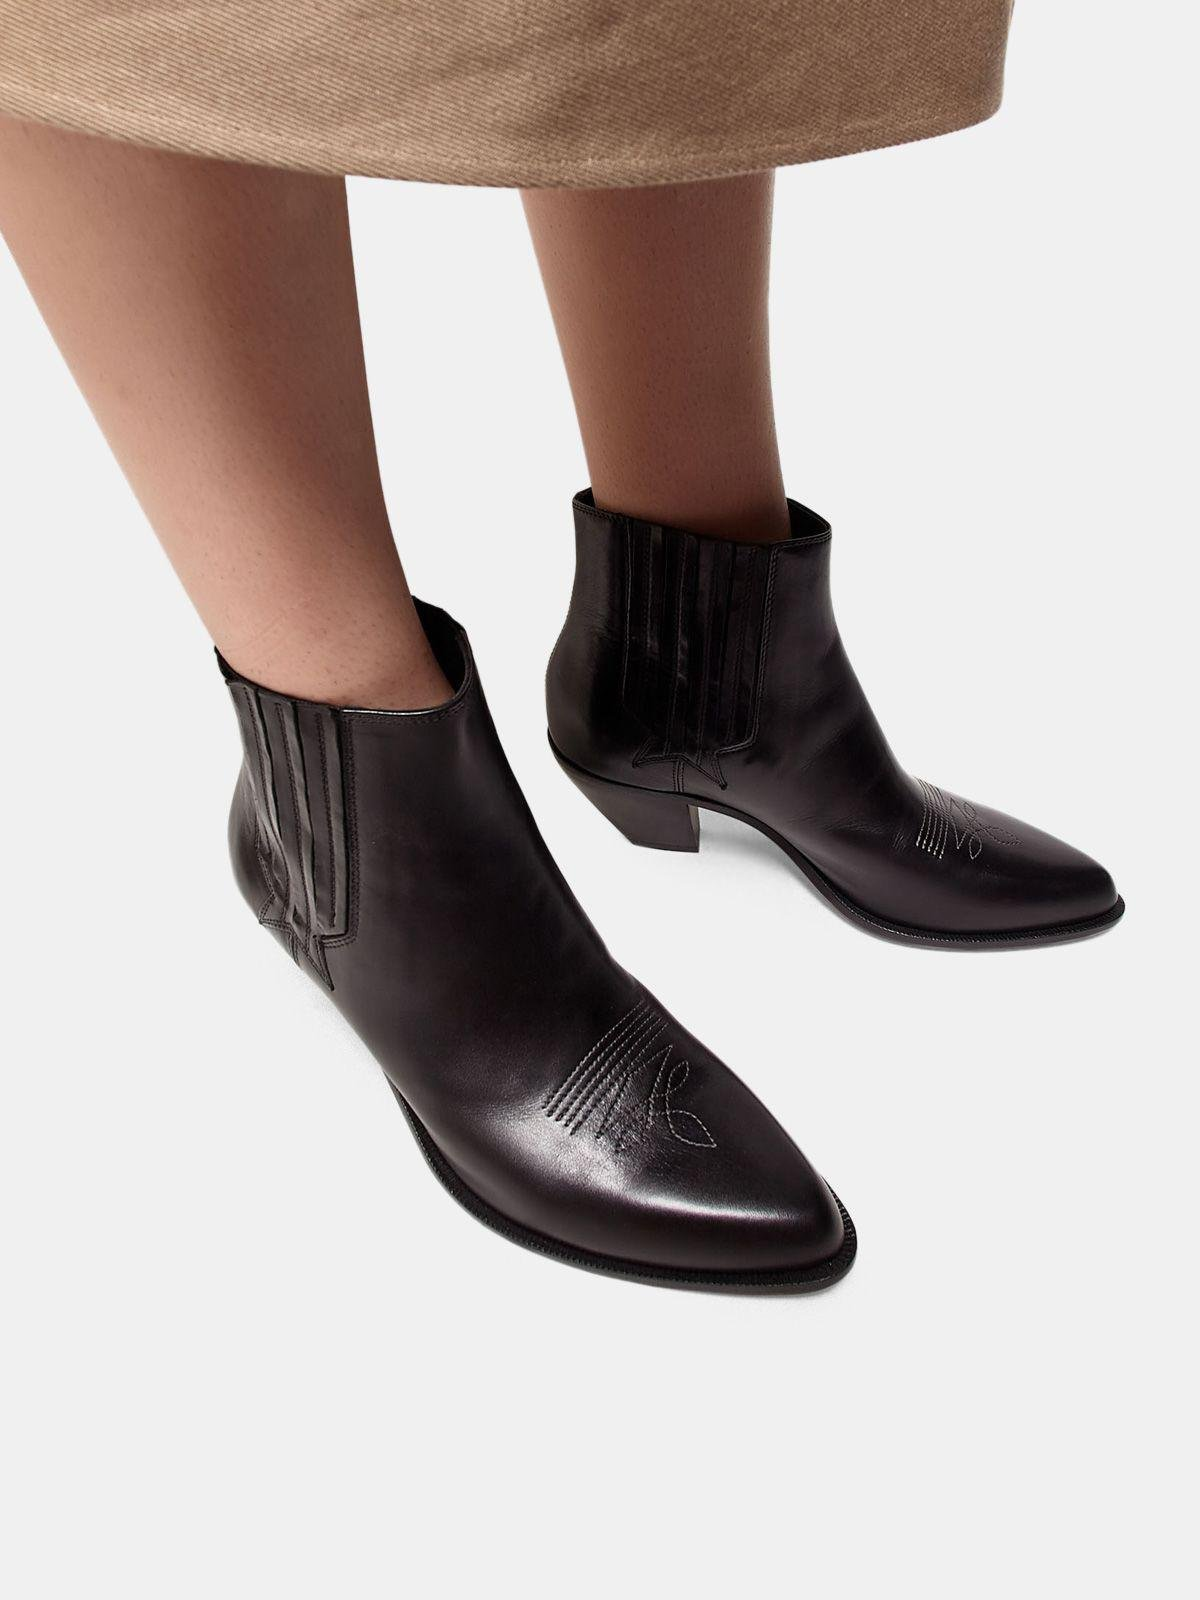 Sunset ankle boots in black leather 4